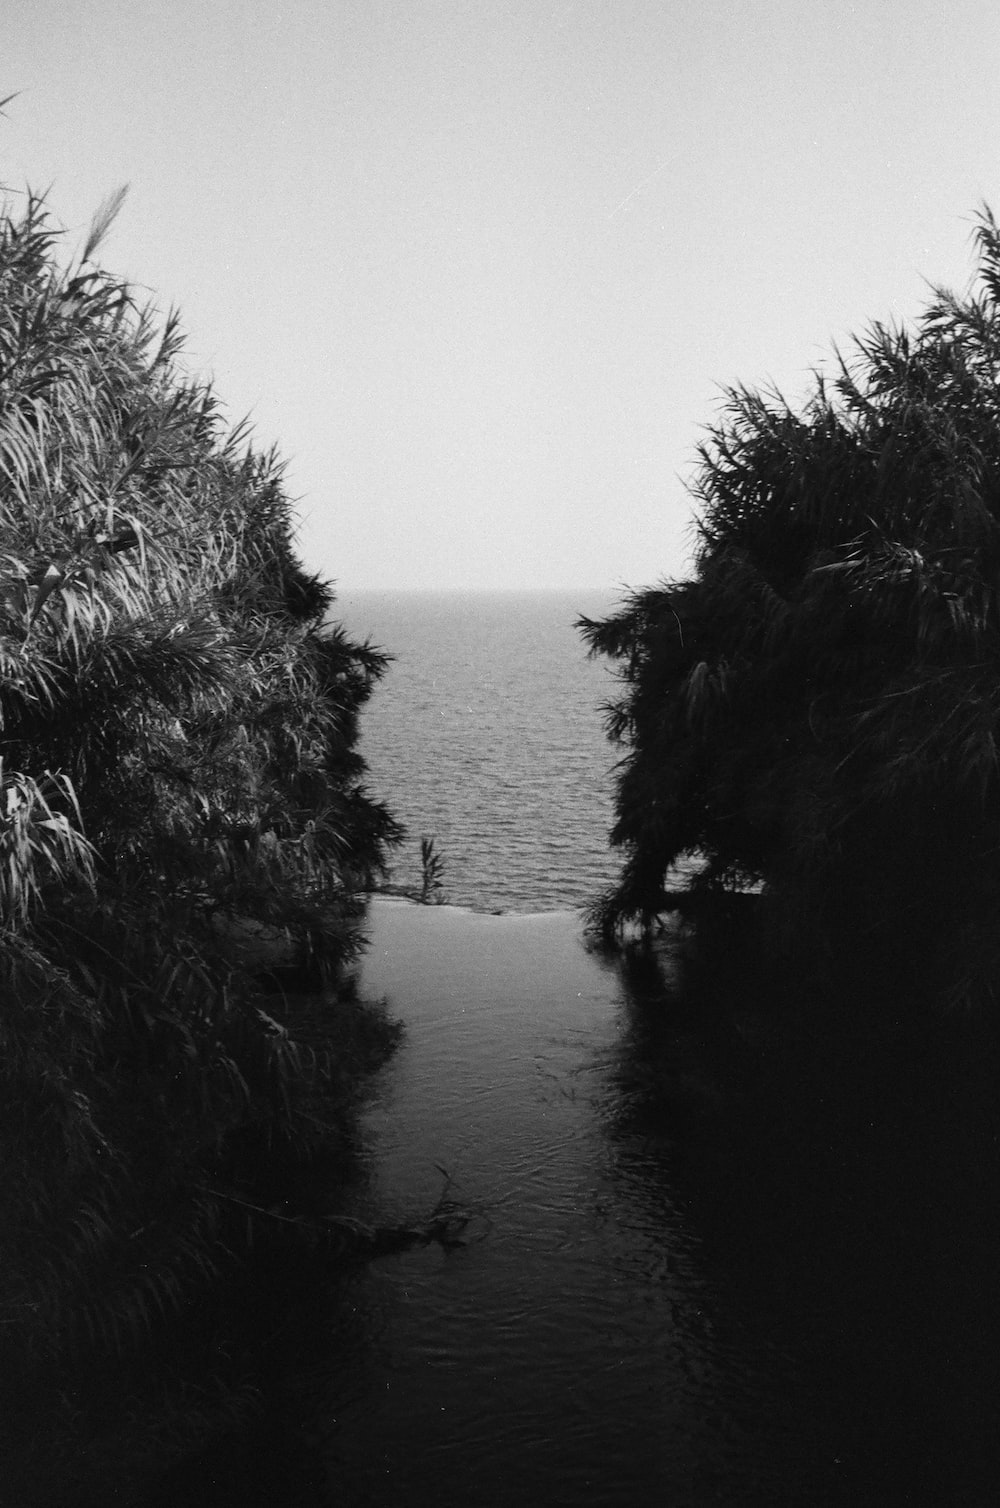 grayscale photo of body of water between trees